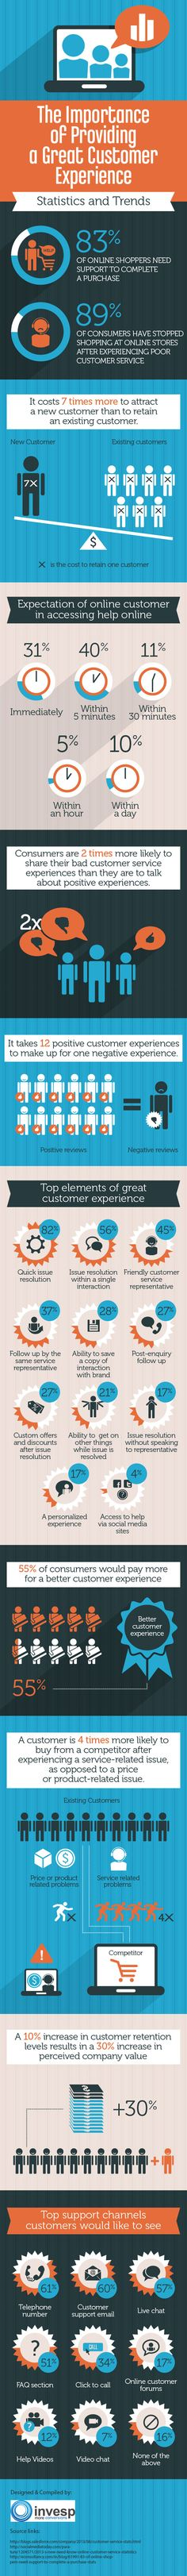 How Important Is Customer Service In Customer Experience? (#Infographic) - The importance of providing a great customer experience.